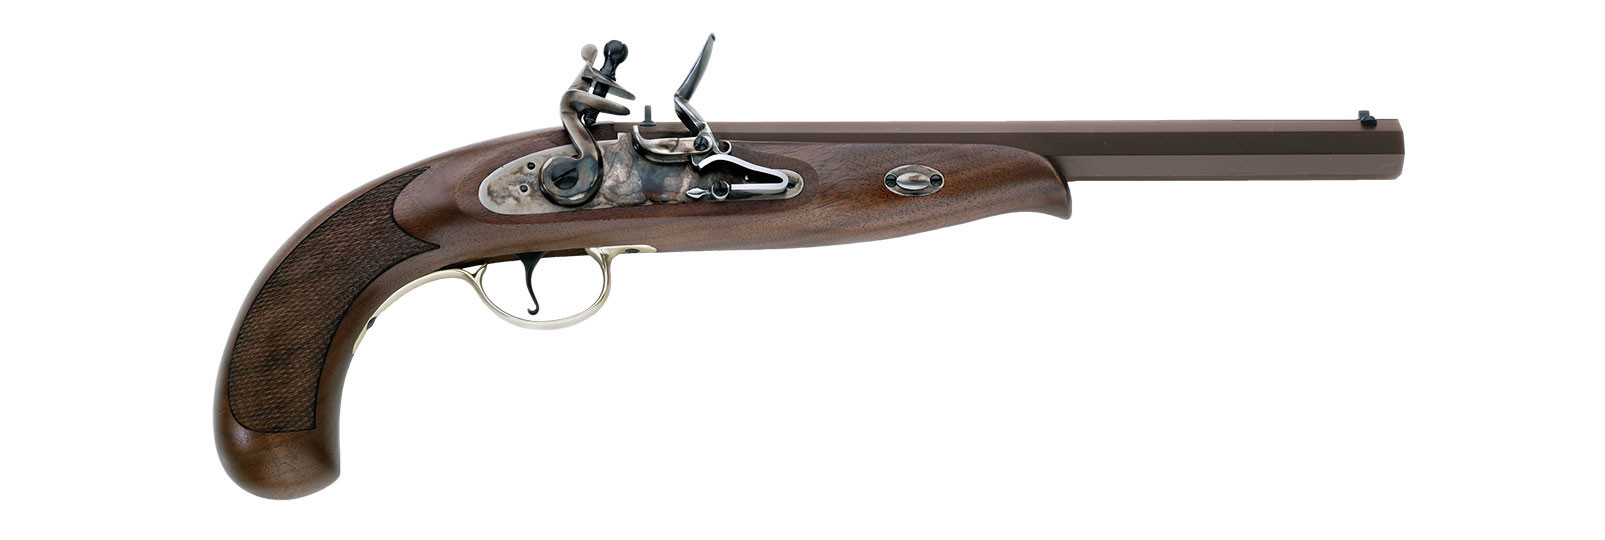 Pistola Continental Duelling a pietra focaia